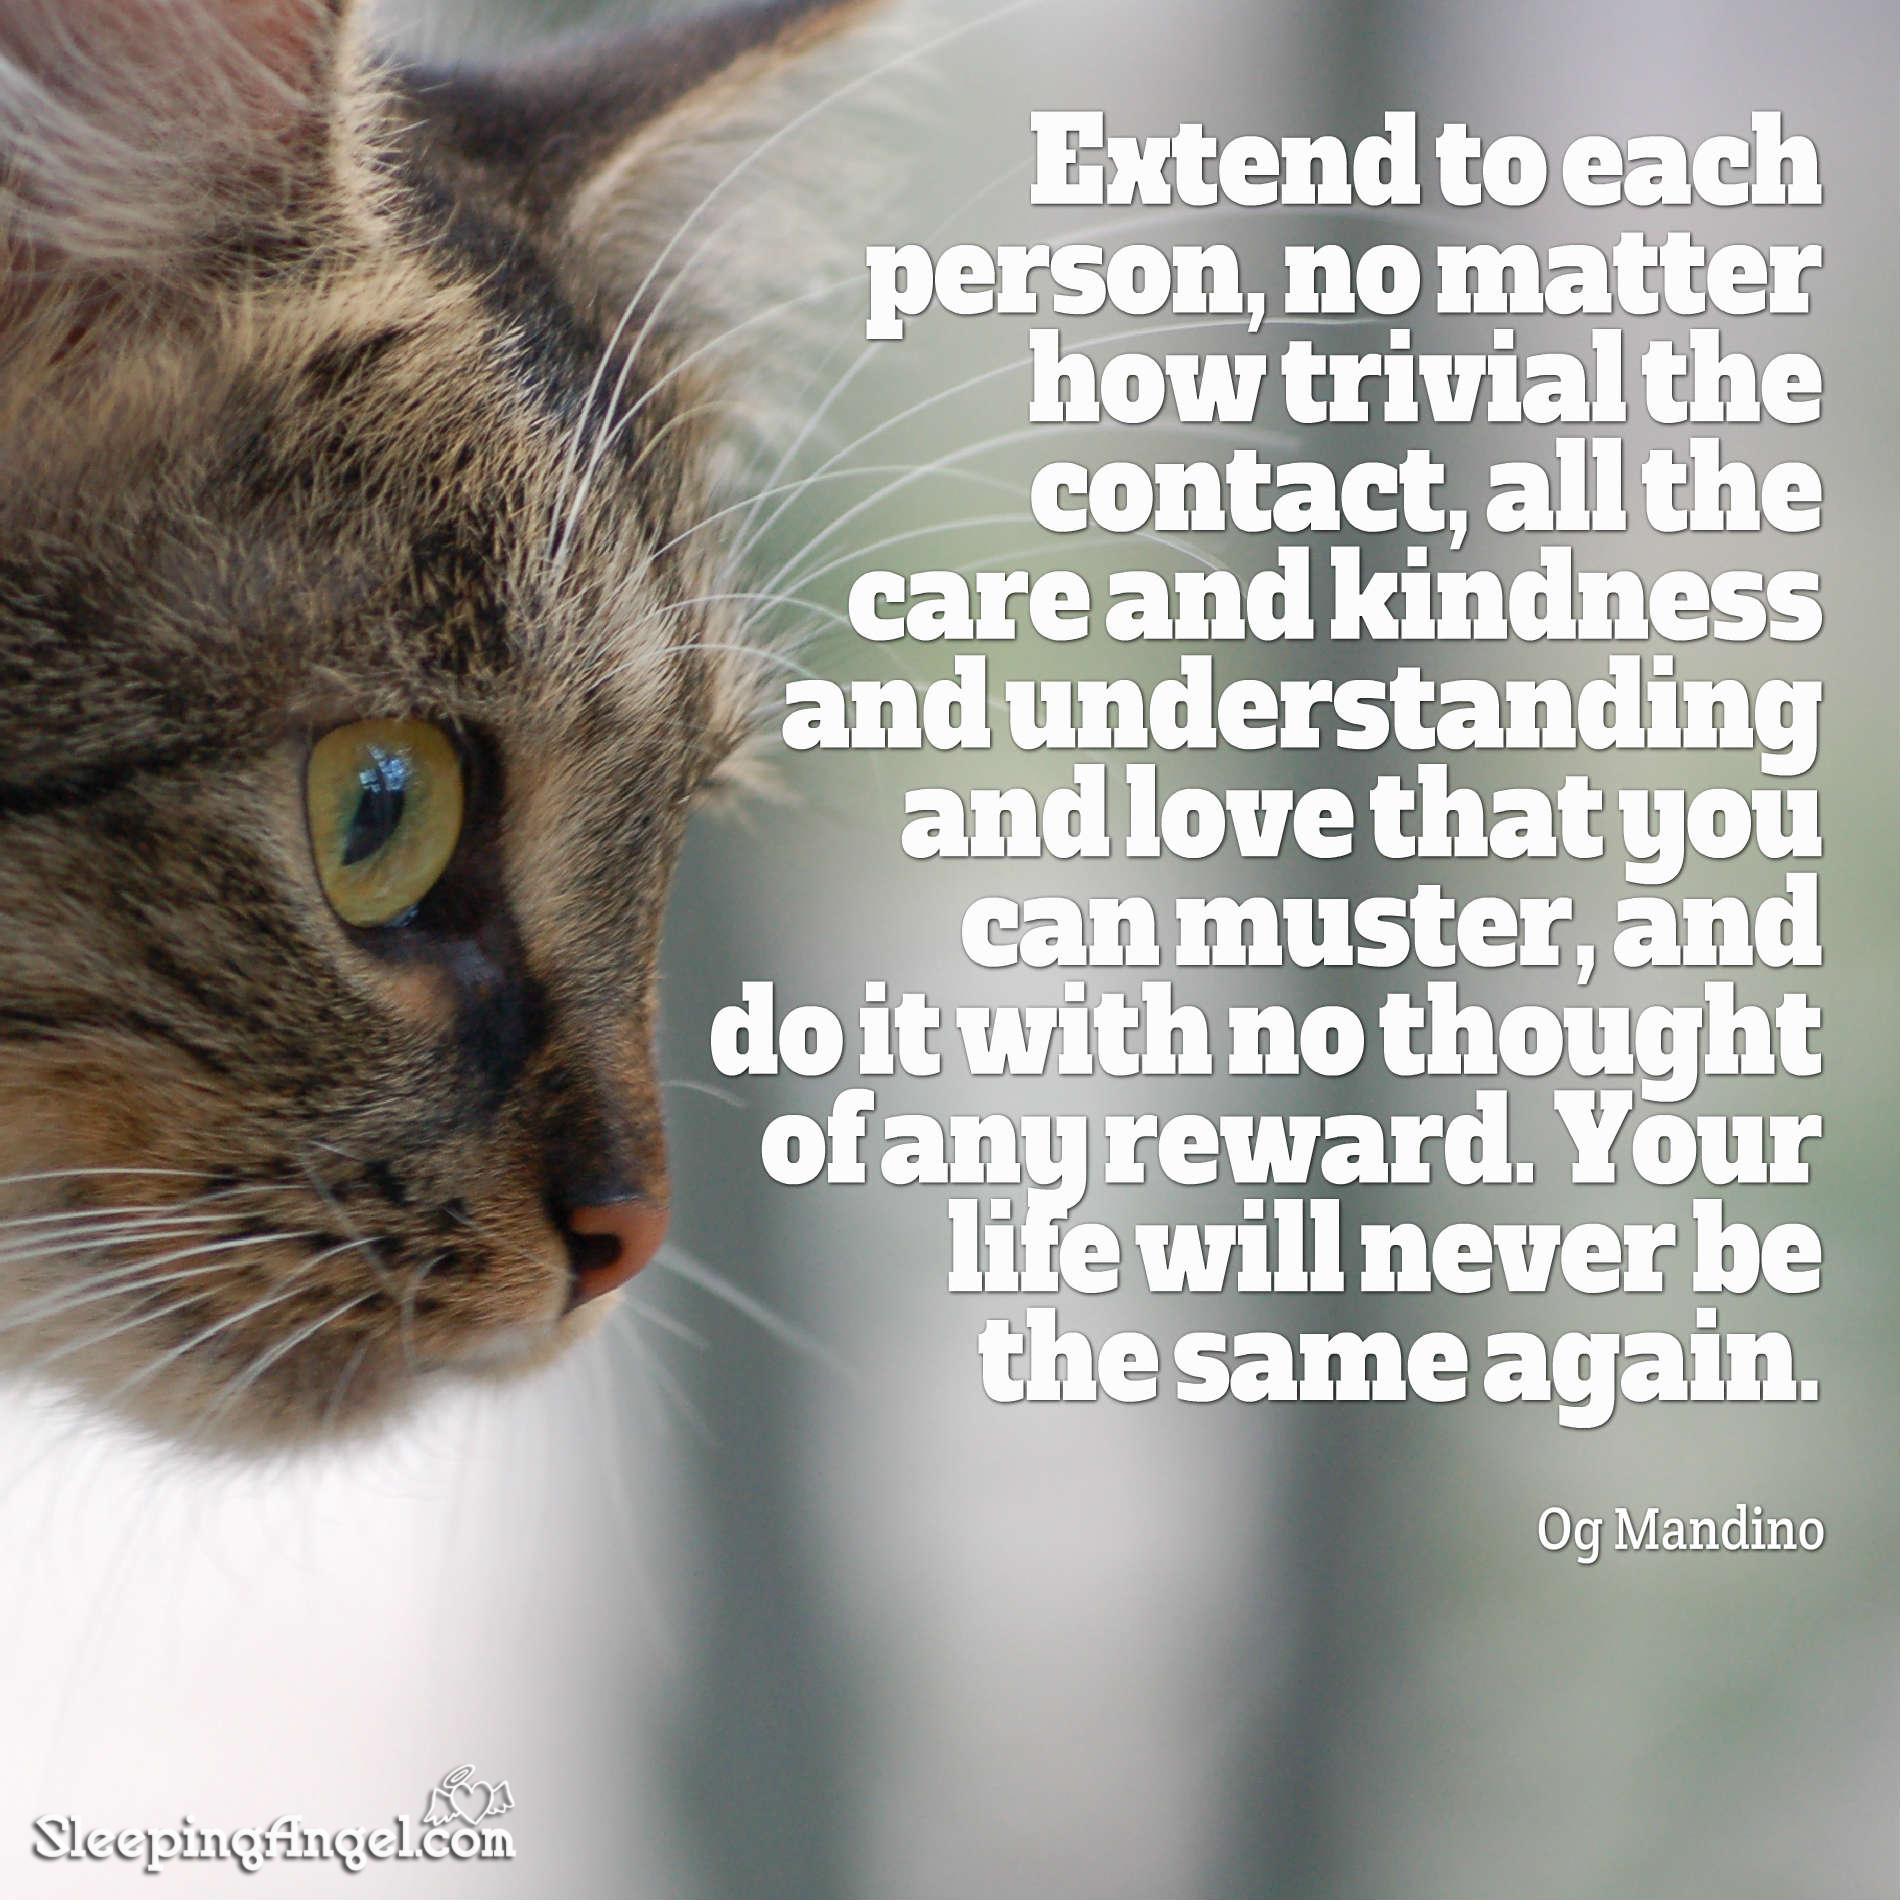 Care & Kindness Quote